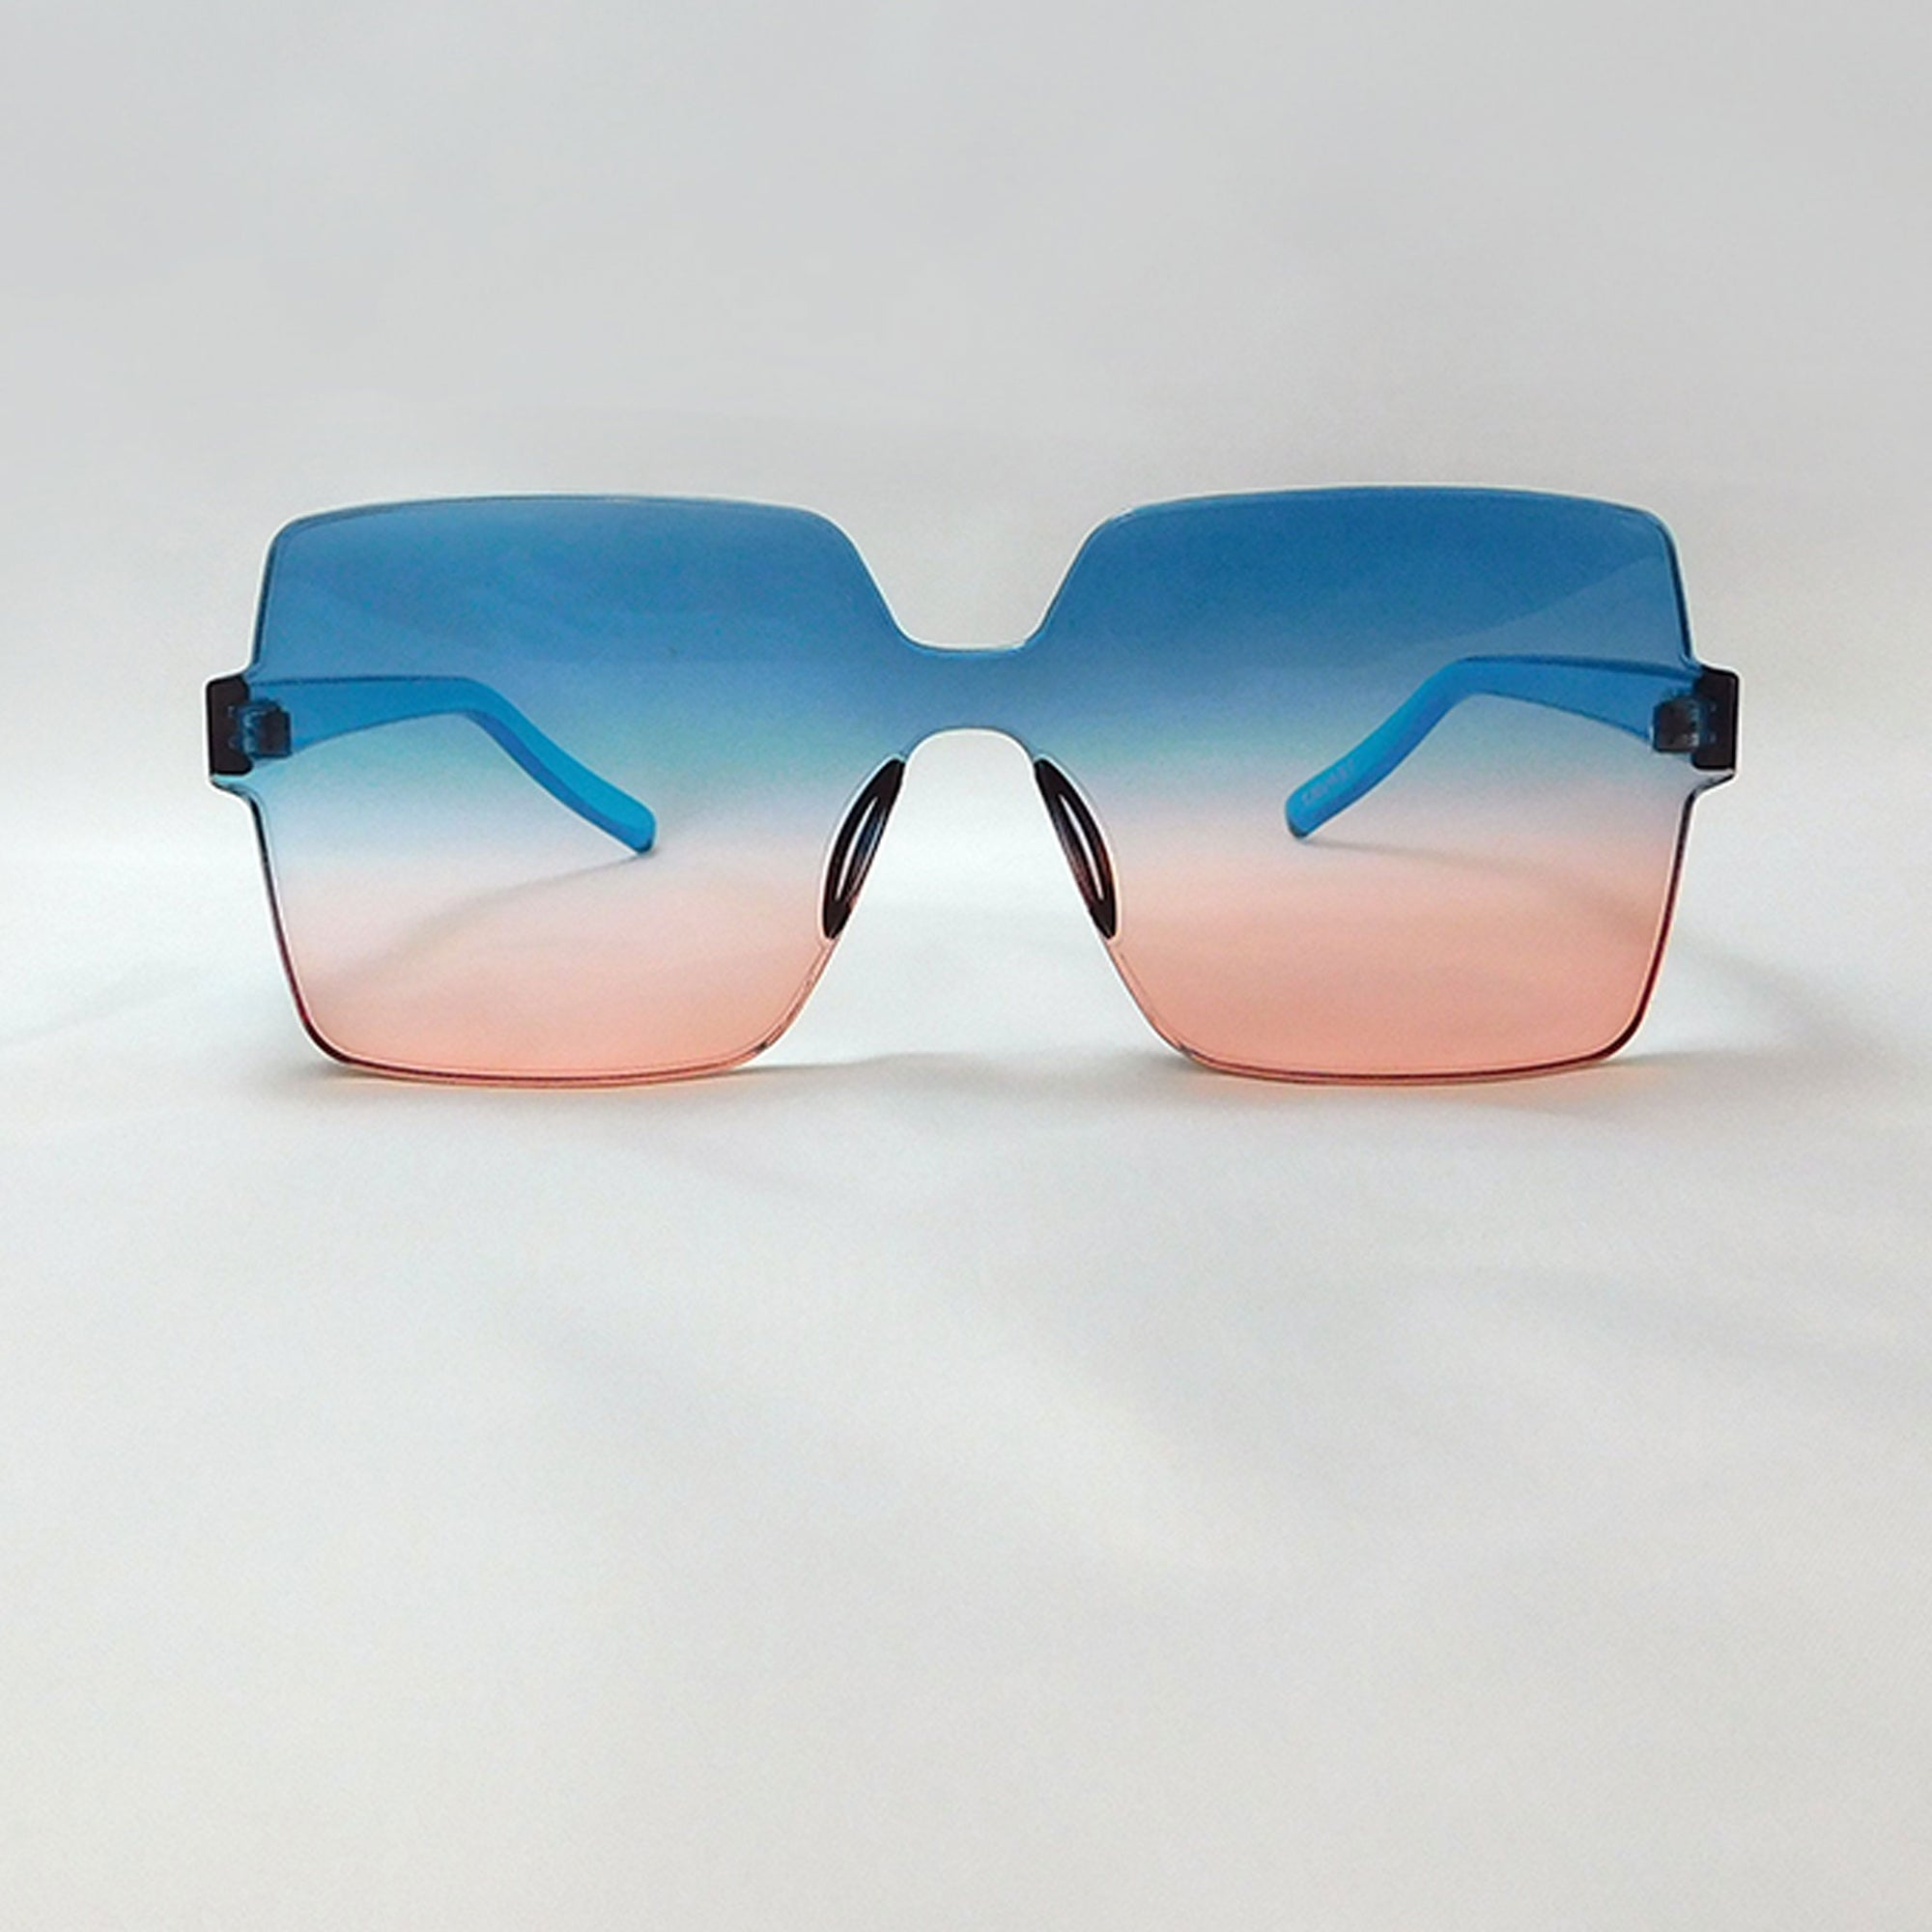 Frameless Sunnies - Square in Assorted Colors